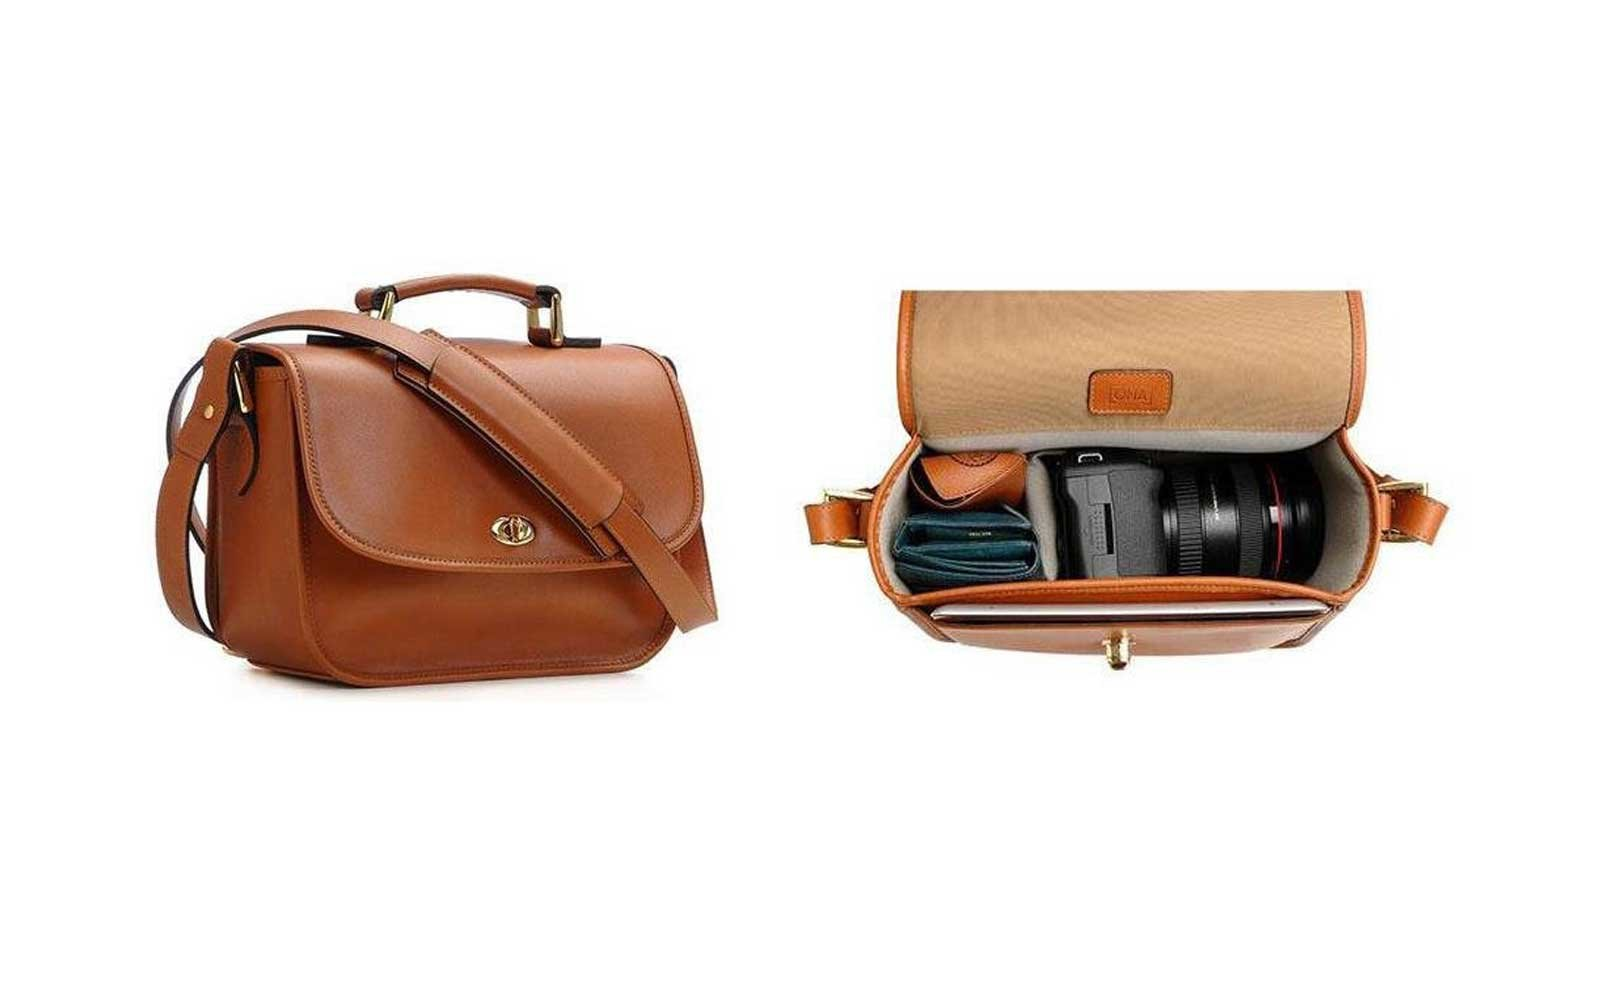 Camera dslr bag stylish advise dress for on every day in 2019